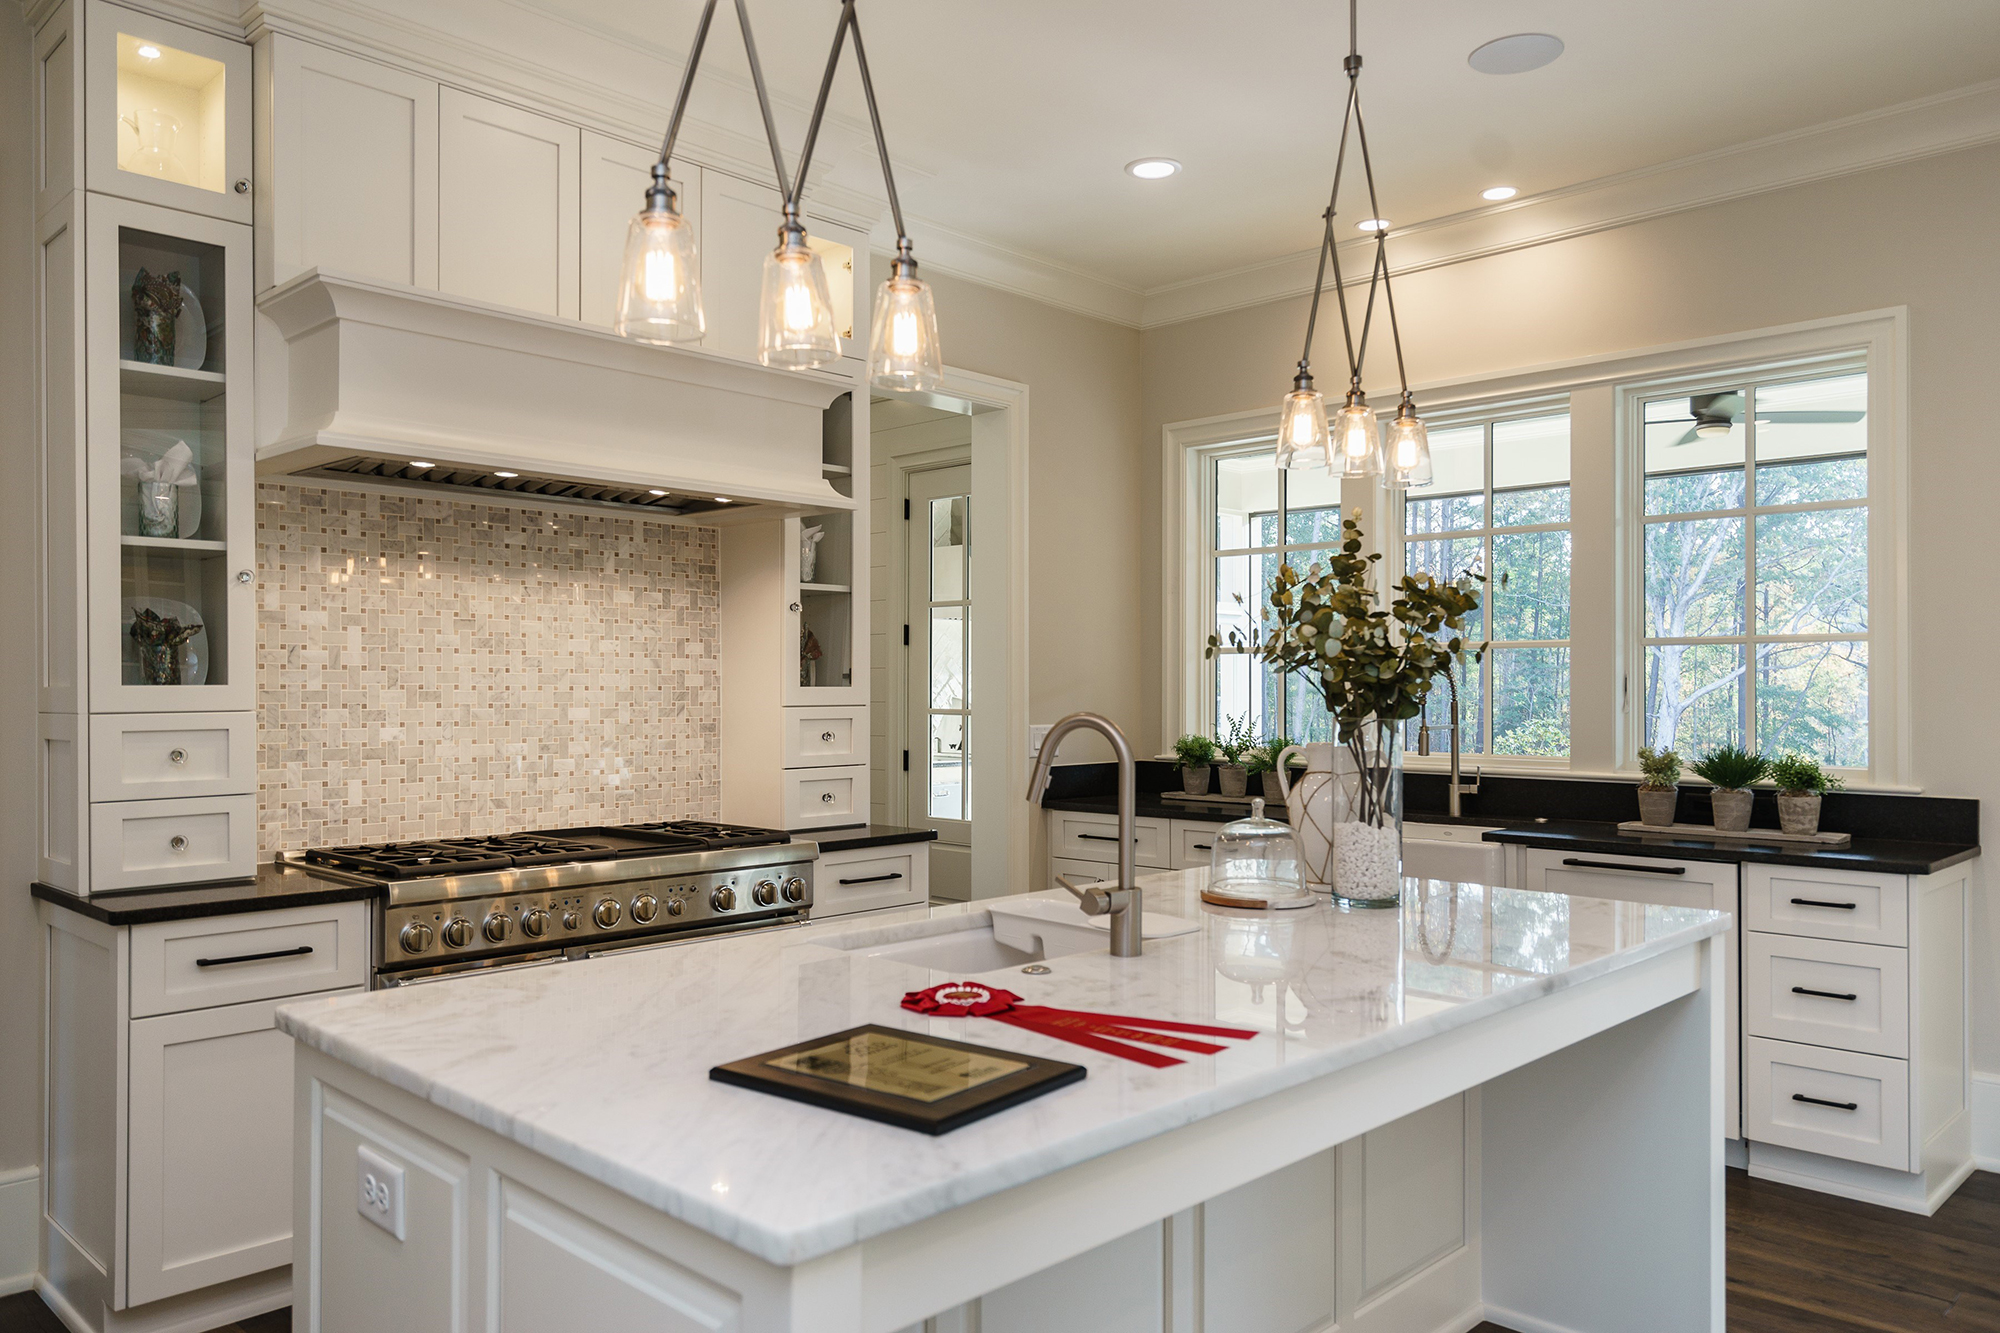 Our gallery of homes bella vista luxury development north raleigh nc Kitchen design center raleigh nc